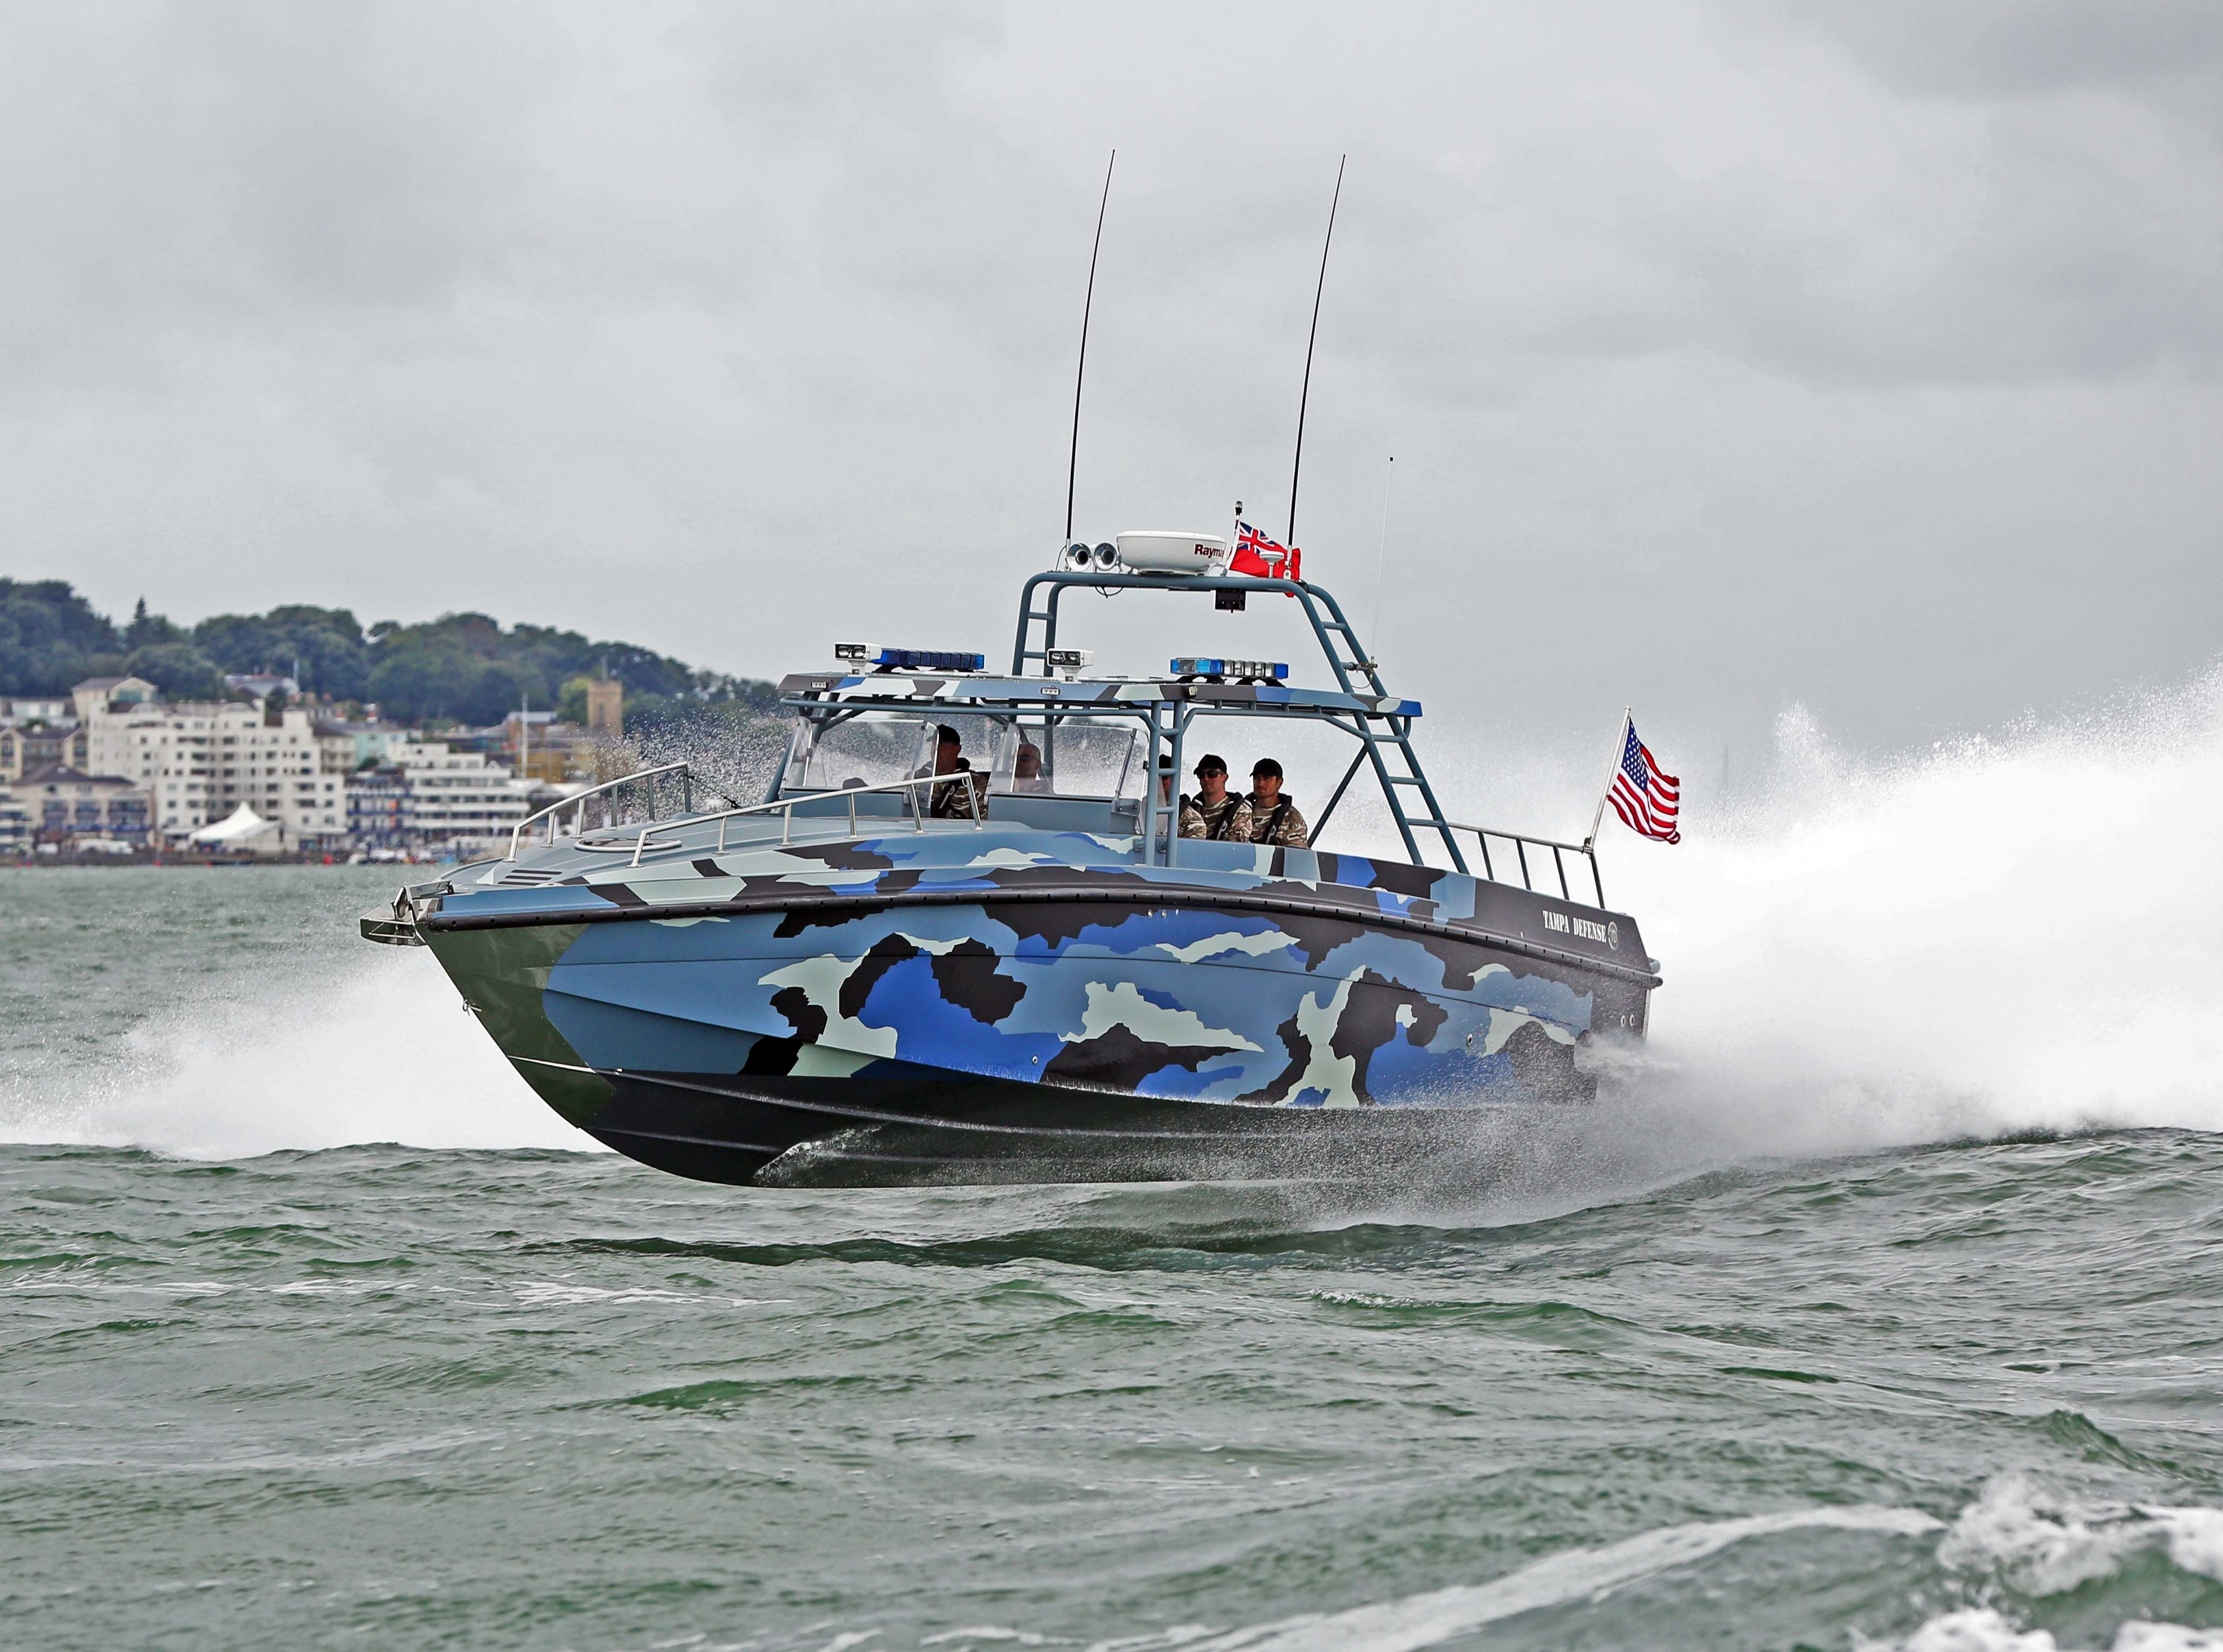 Boat & Watercraft - Wraps, Decals & Graphics | Image360